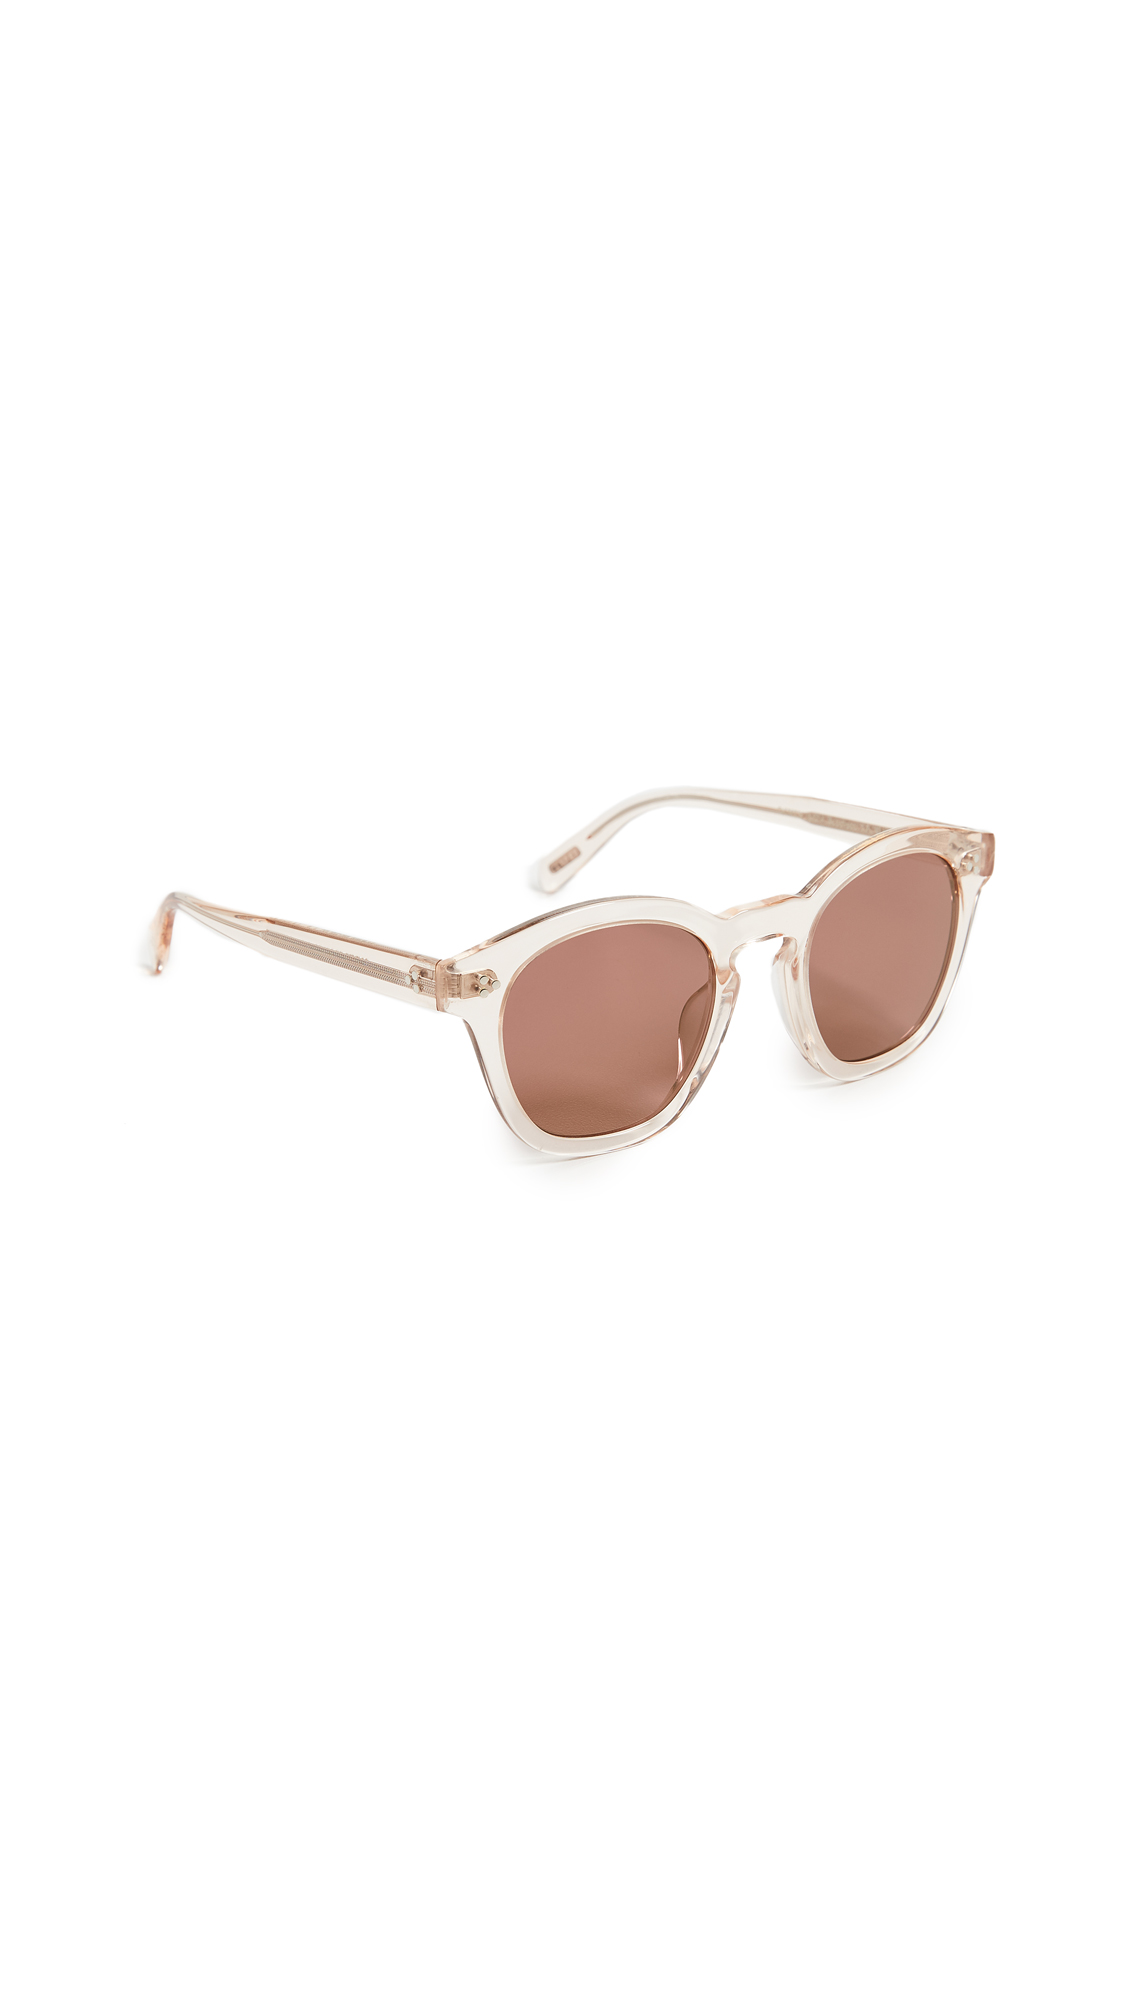 Oliver Peoples Eyewear Boudreau L.A. Sunglasses In Light Silk/Burgundy Mirror